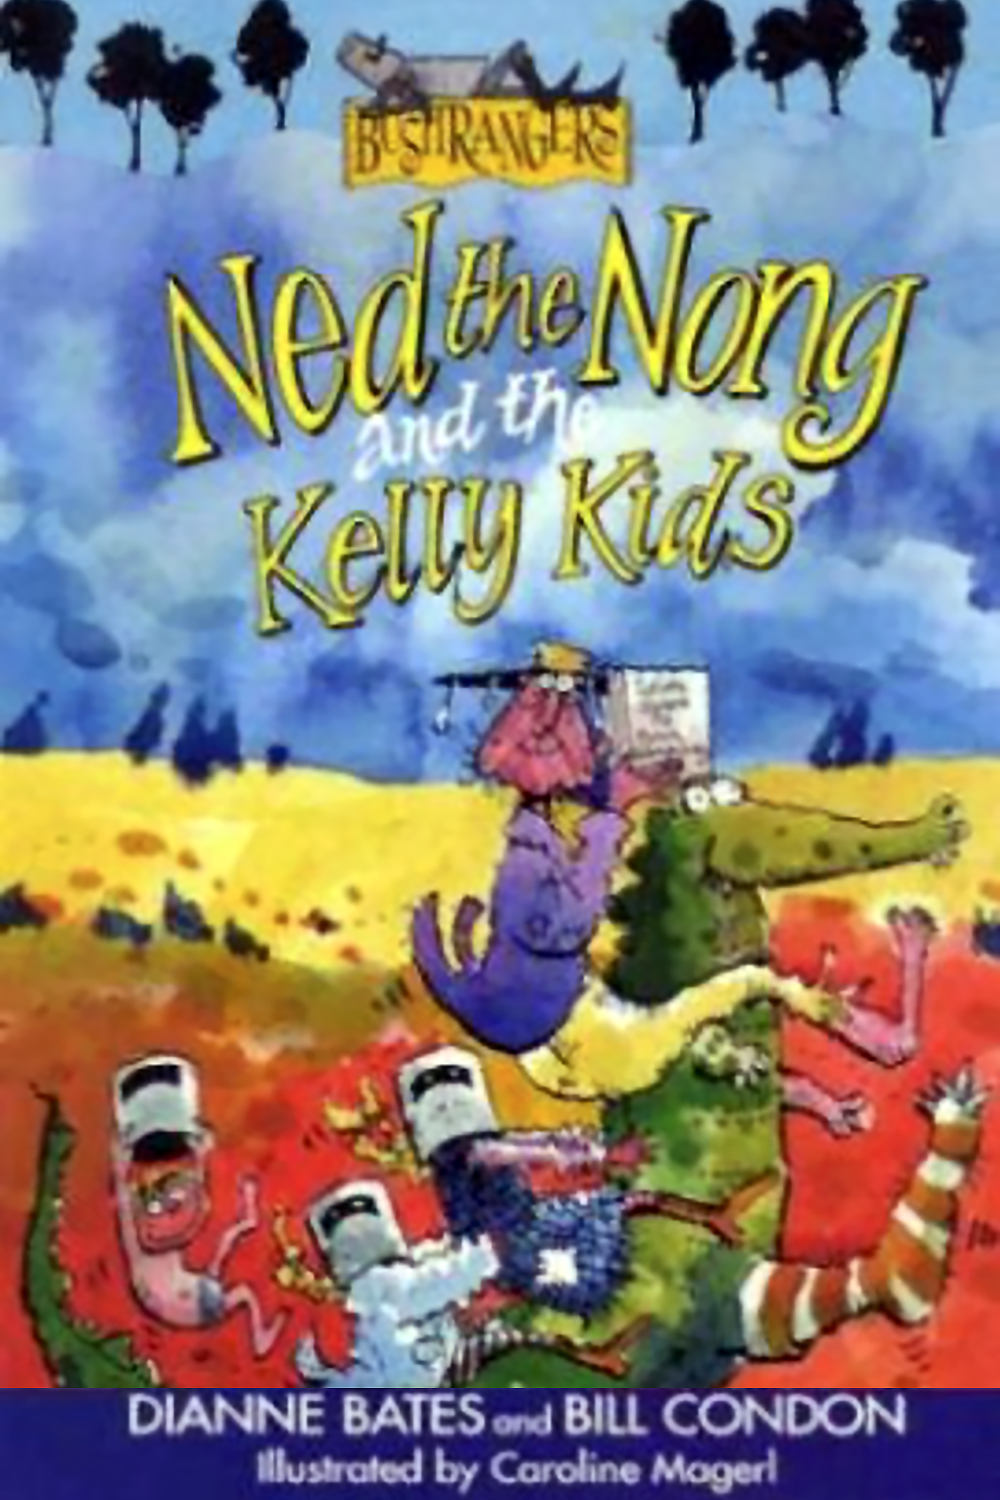 Ned the Nong and the Kelly Kids by Dianne Bates and Bill Condon